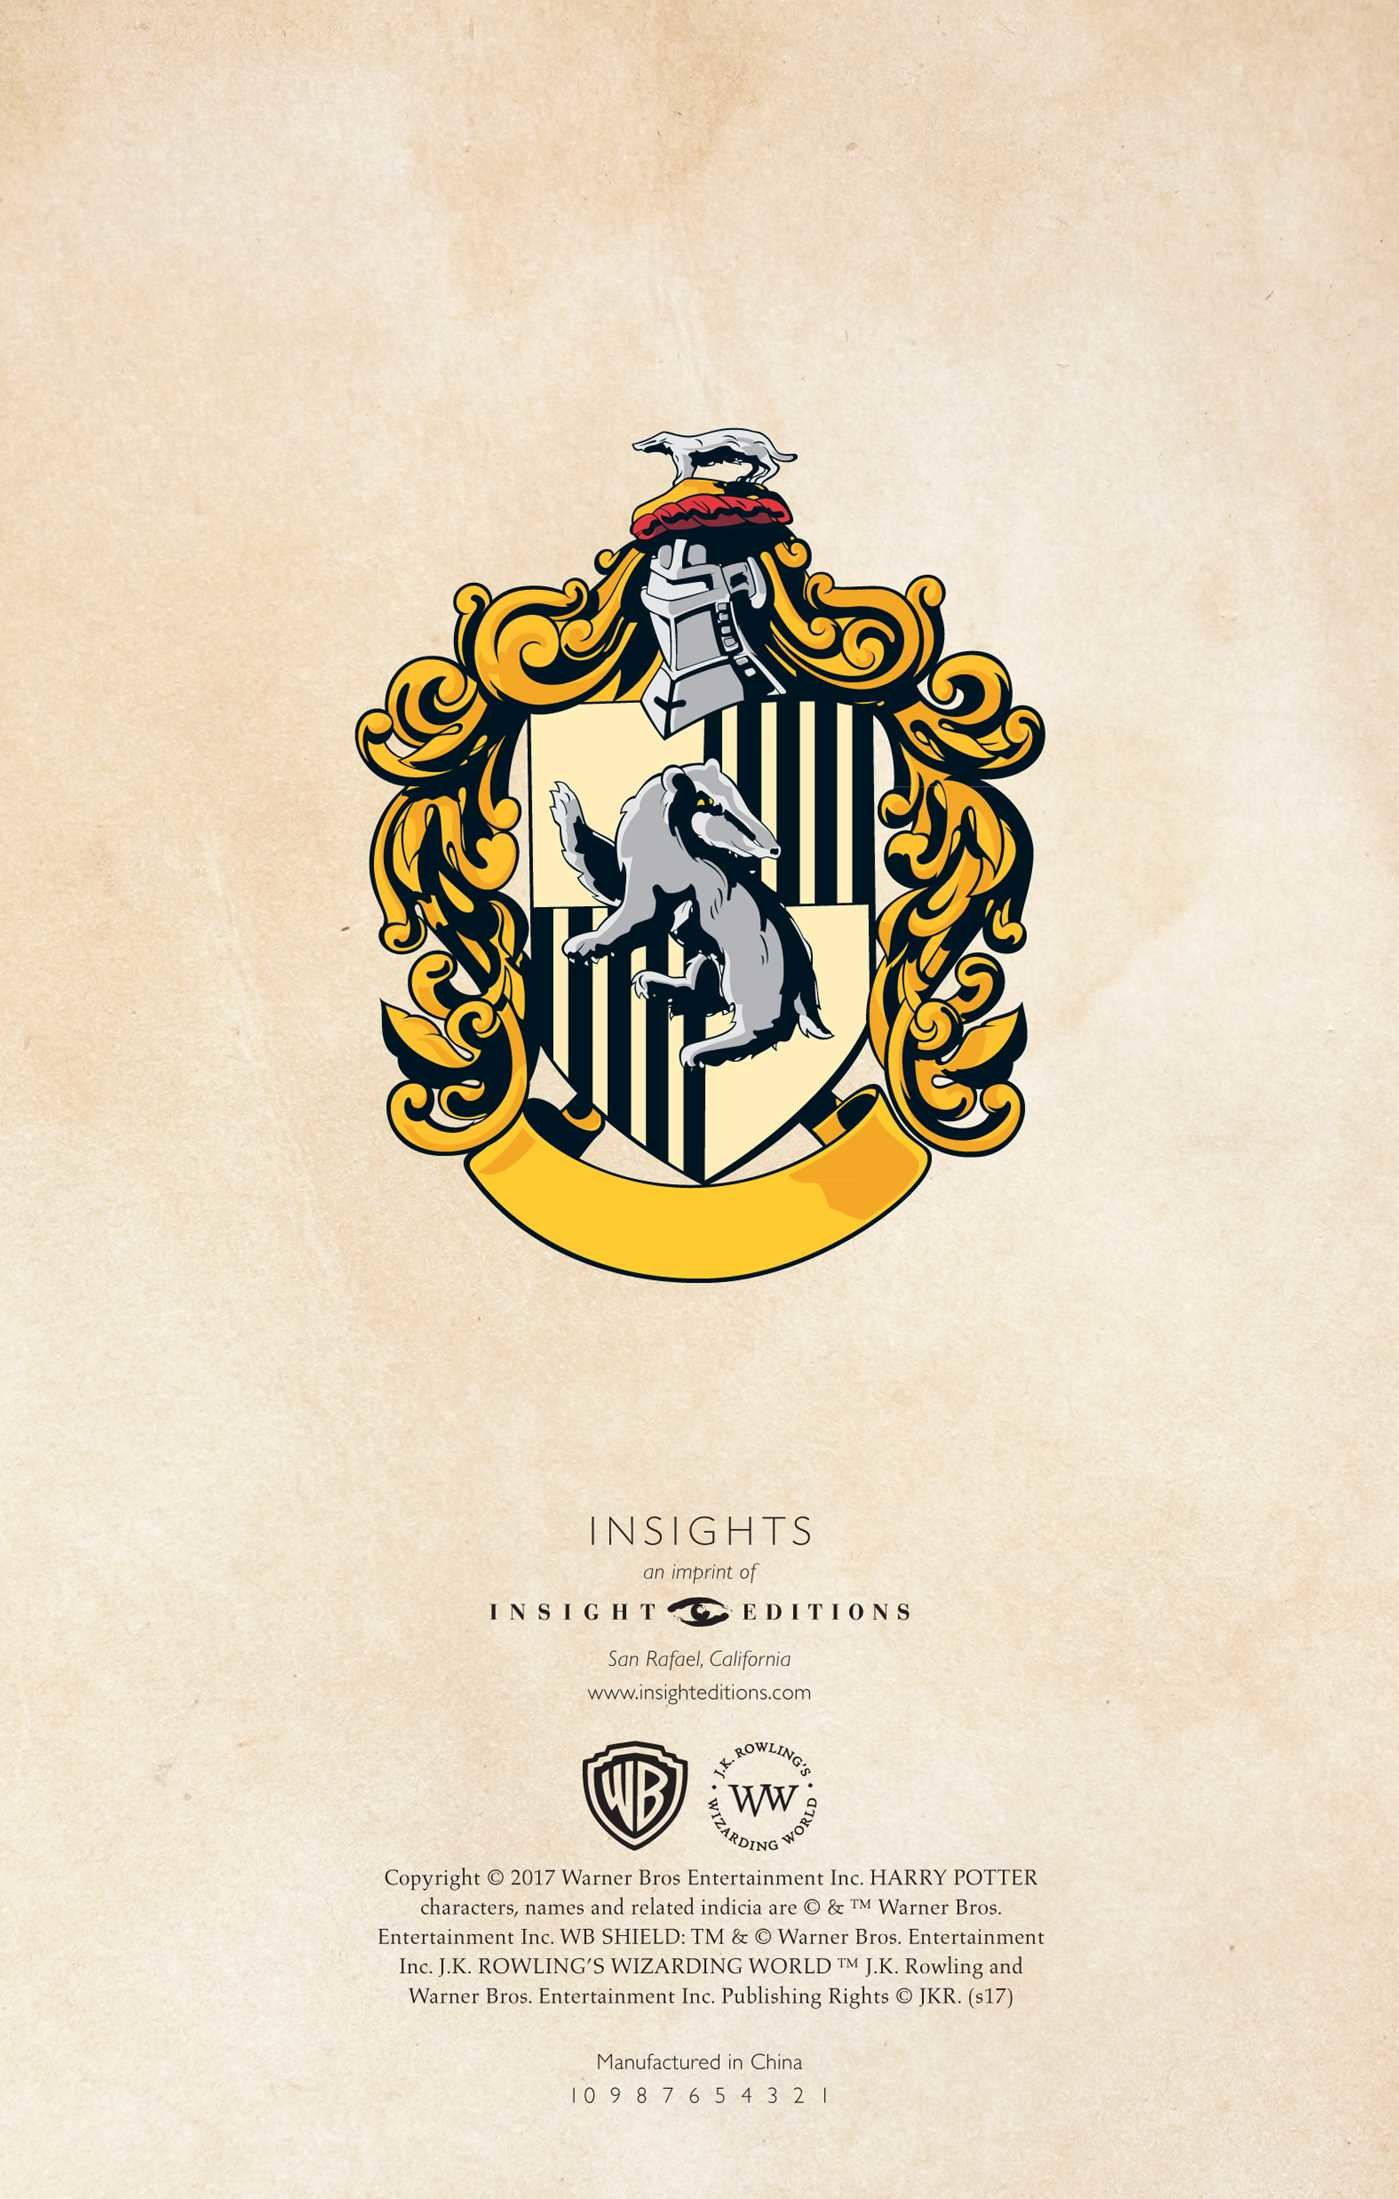 Harry Potter Hufflepuff Ruled Notebook Book By Insight Editions